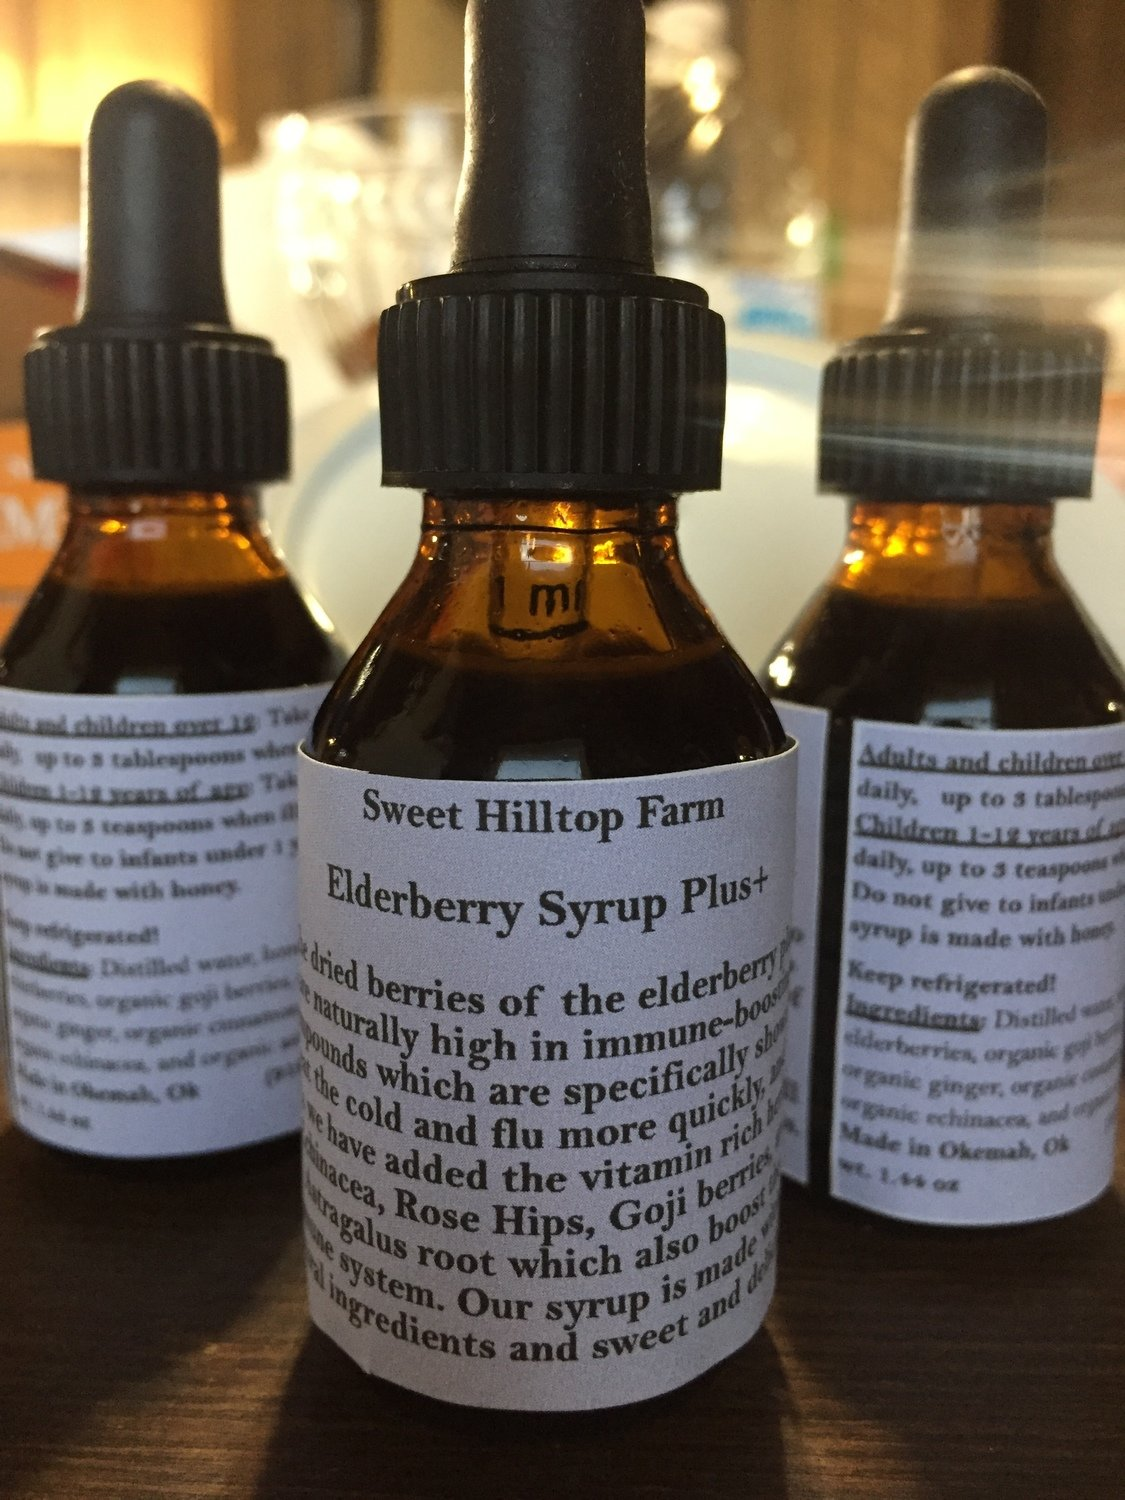 Elderberry Plus+ Syrup (Pickup or Delivery Only)